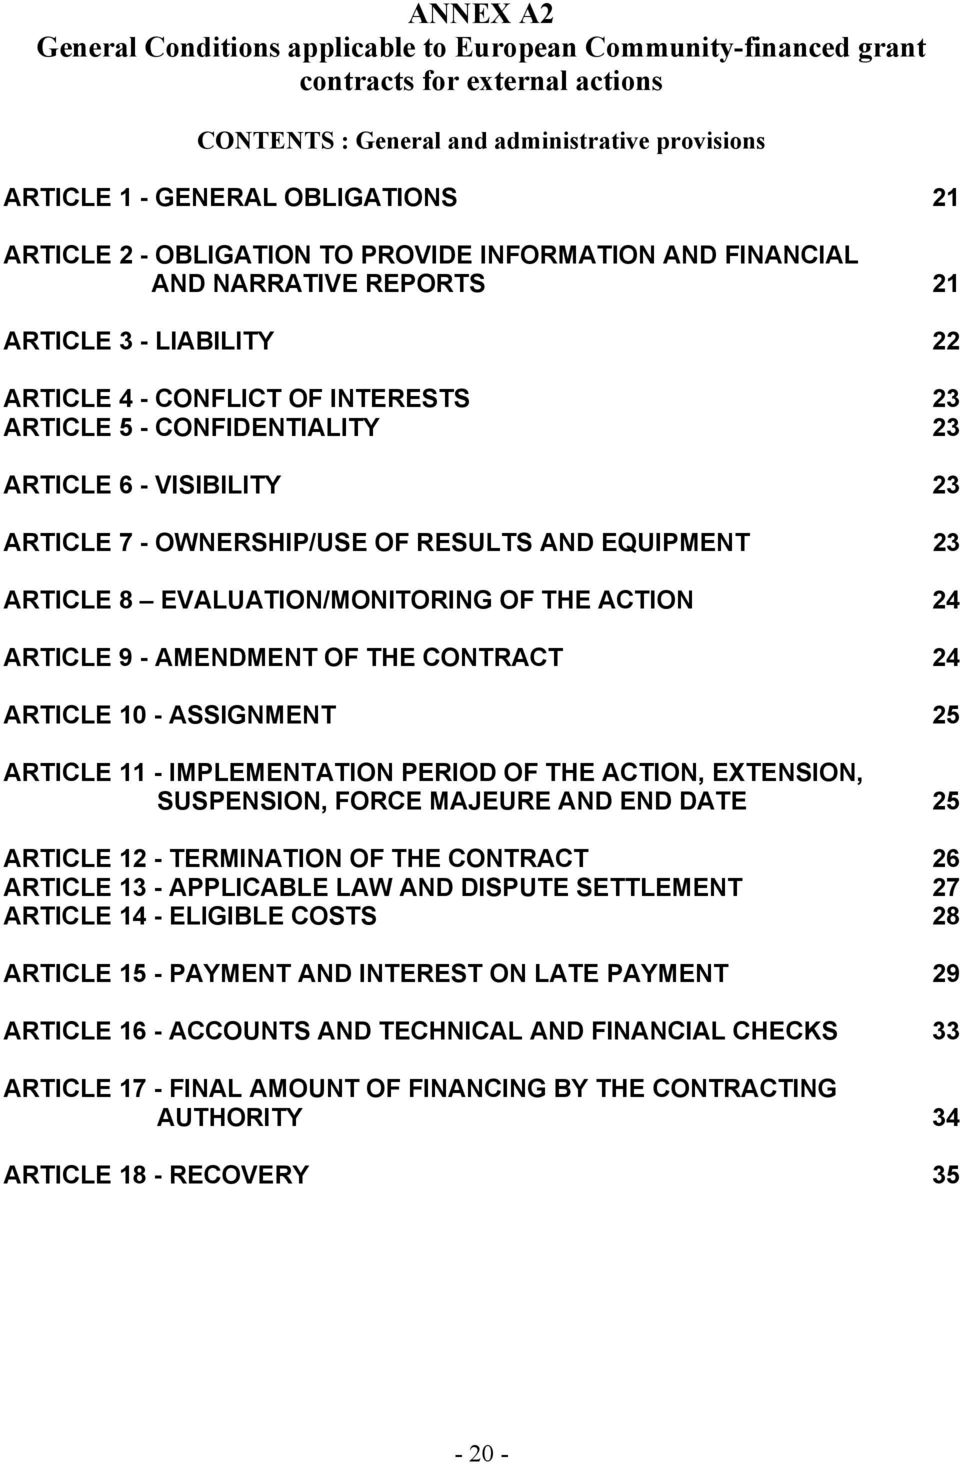 ARTICLE 7 - OWNERSHIP/USE OF RESULTS AND EQUIPMENT 23 ARTICLE 8 EVALUATION/MONITORING OF THE ACTION 24 ARTICLE 9 - AMENDMENT OF THE CONTRACT 24 ARTICLE 10 - ASSIGNMENT 25 ARTICLE 11 - IMPLEMENTATION